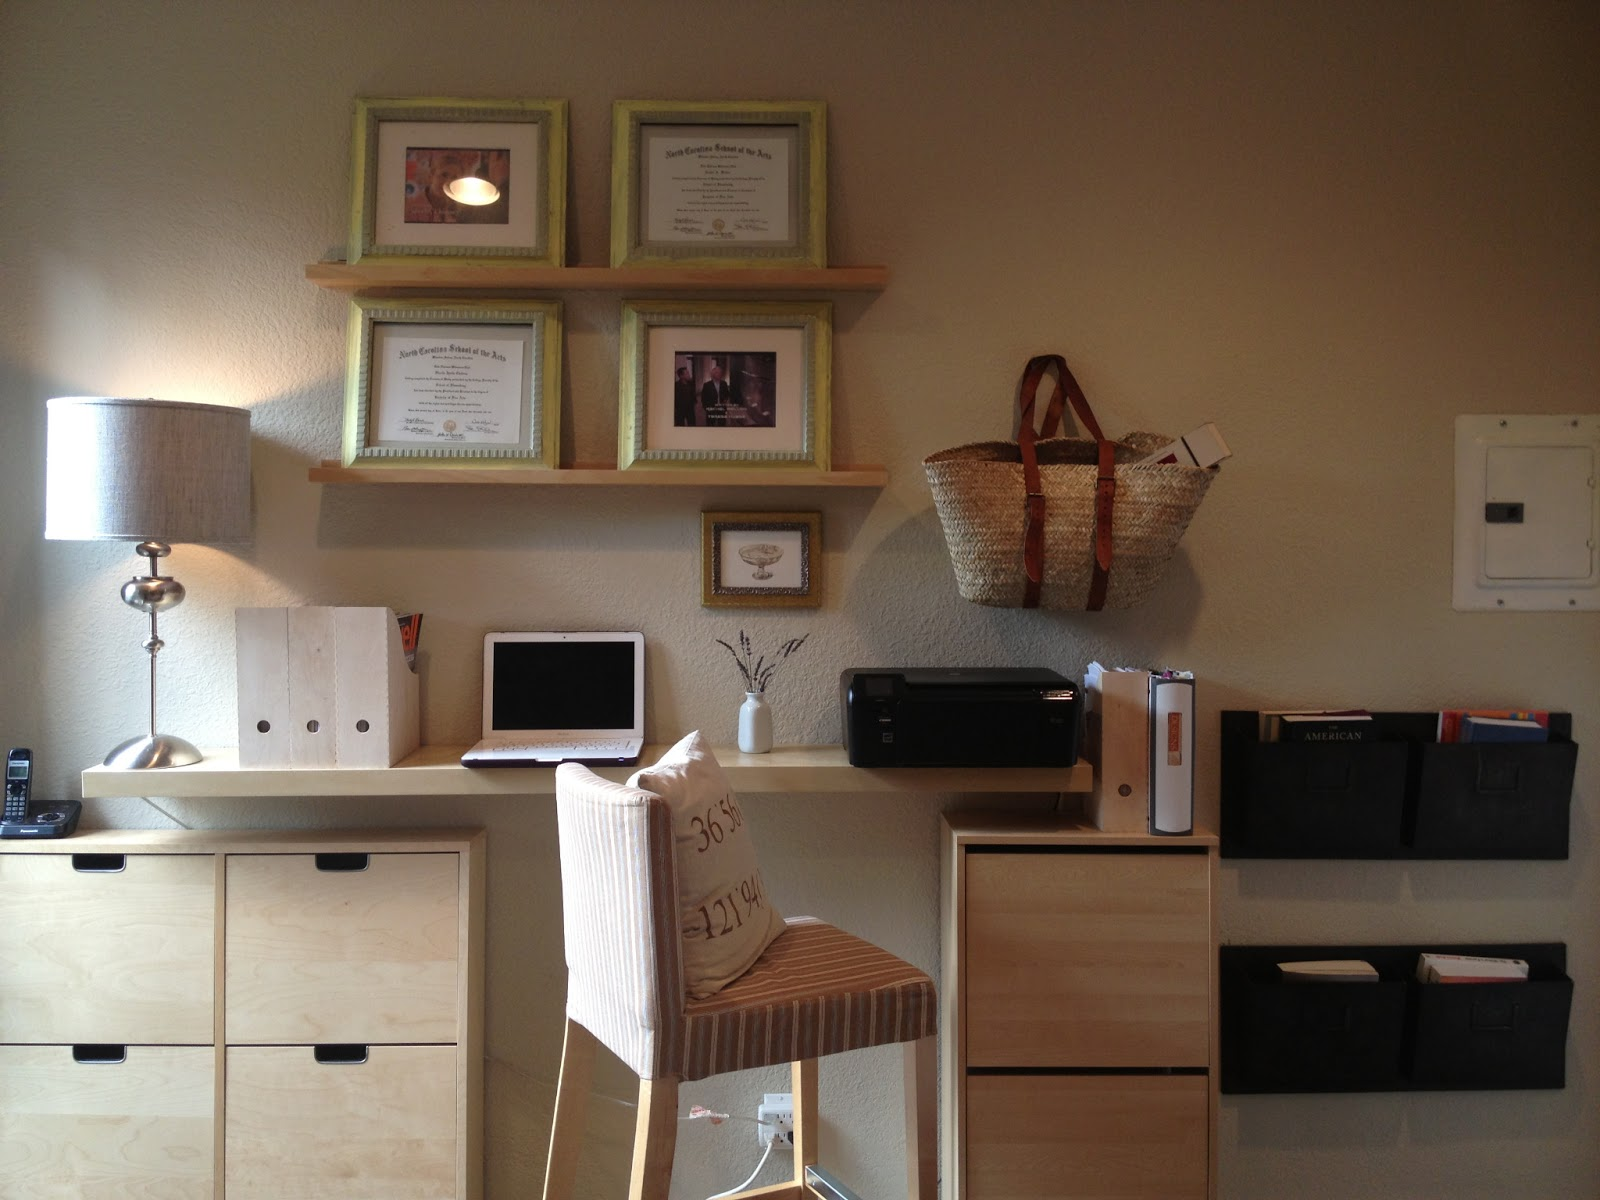 Ikea Hacks Küchentheke Ikea Hacking Bureau Excellent Ikea Hacks You Should Try Mental